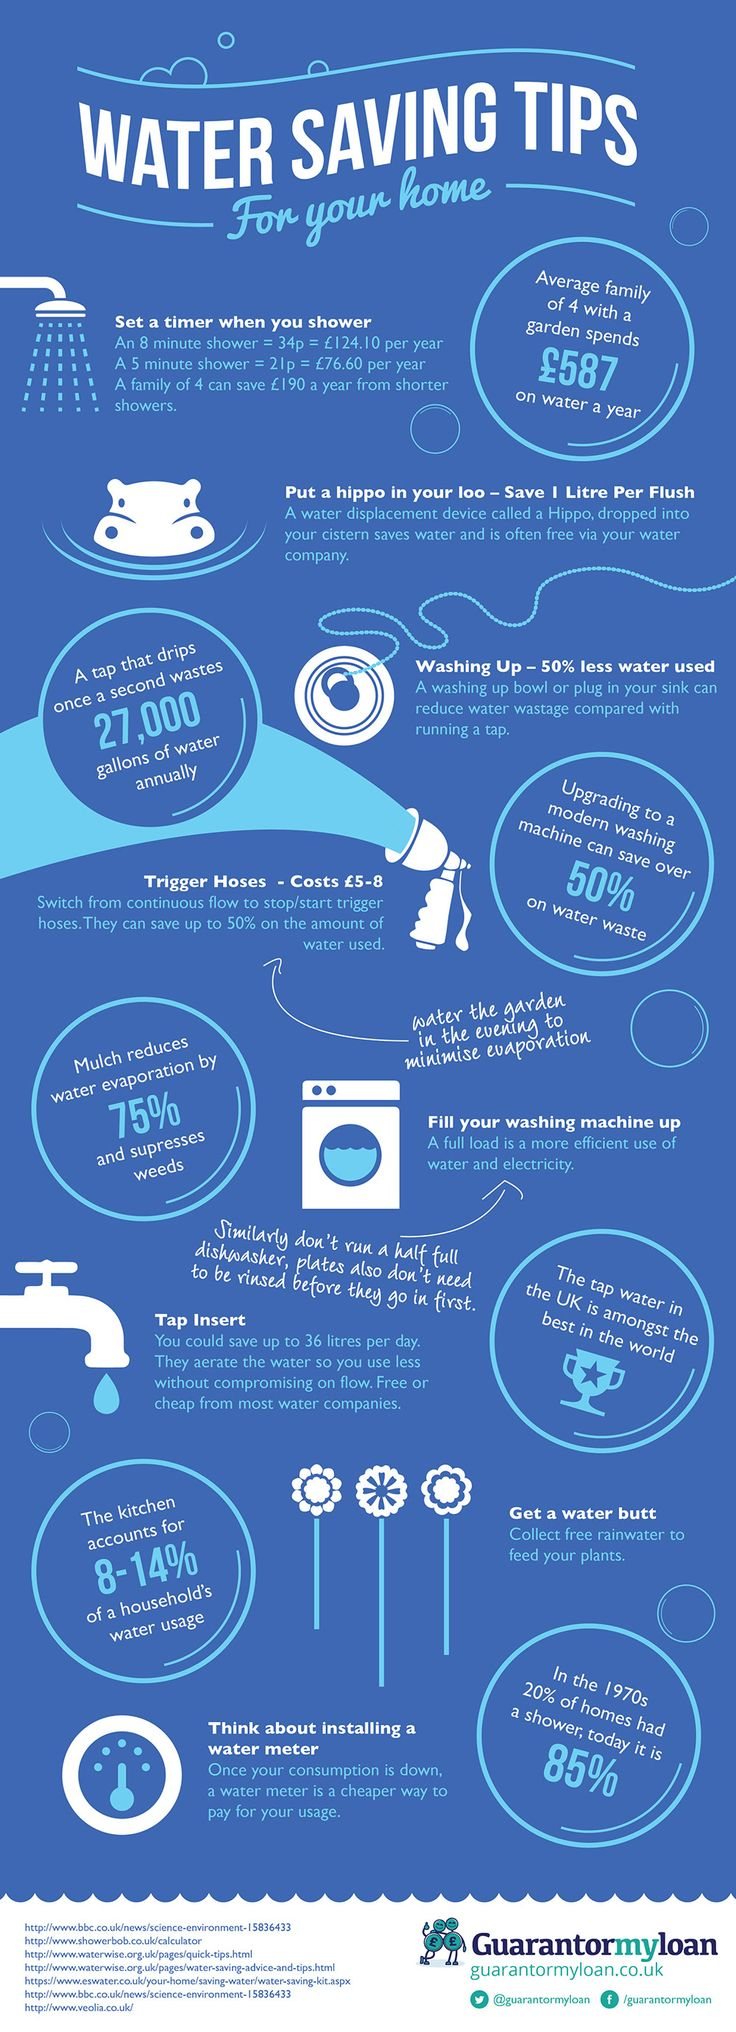 Water saving tips for your home. #infographic (More design inspiration at www.aldenchong.com)